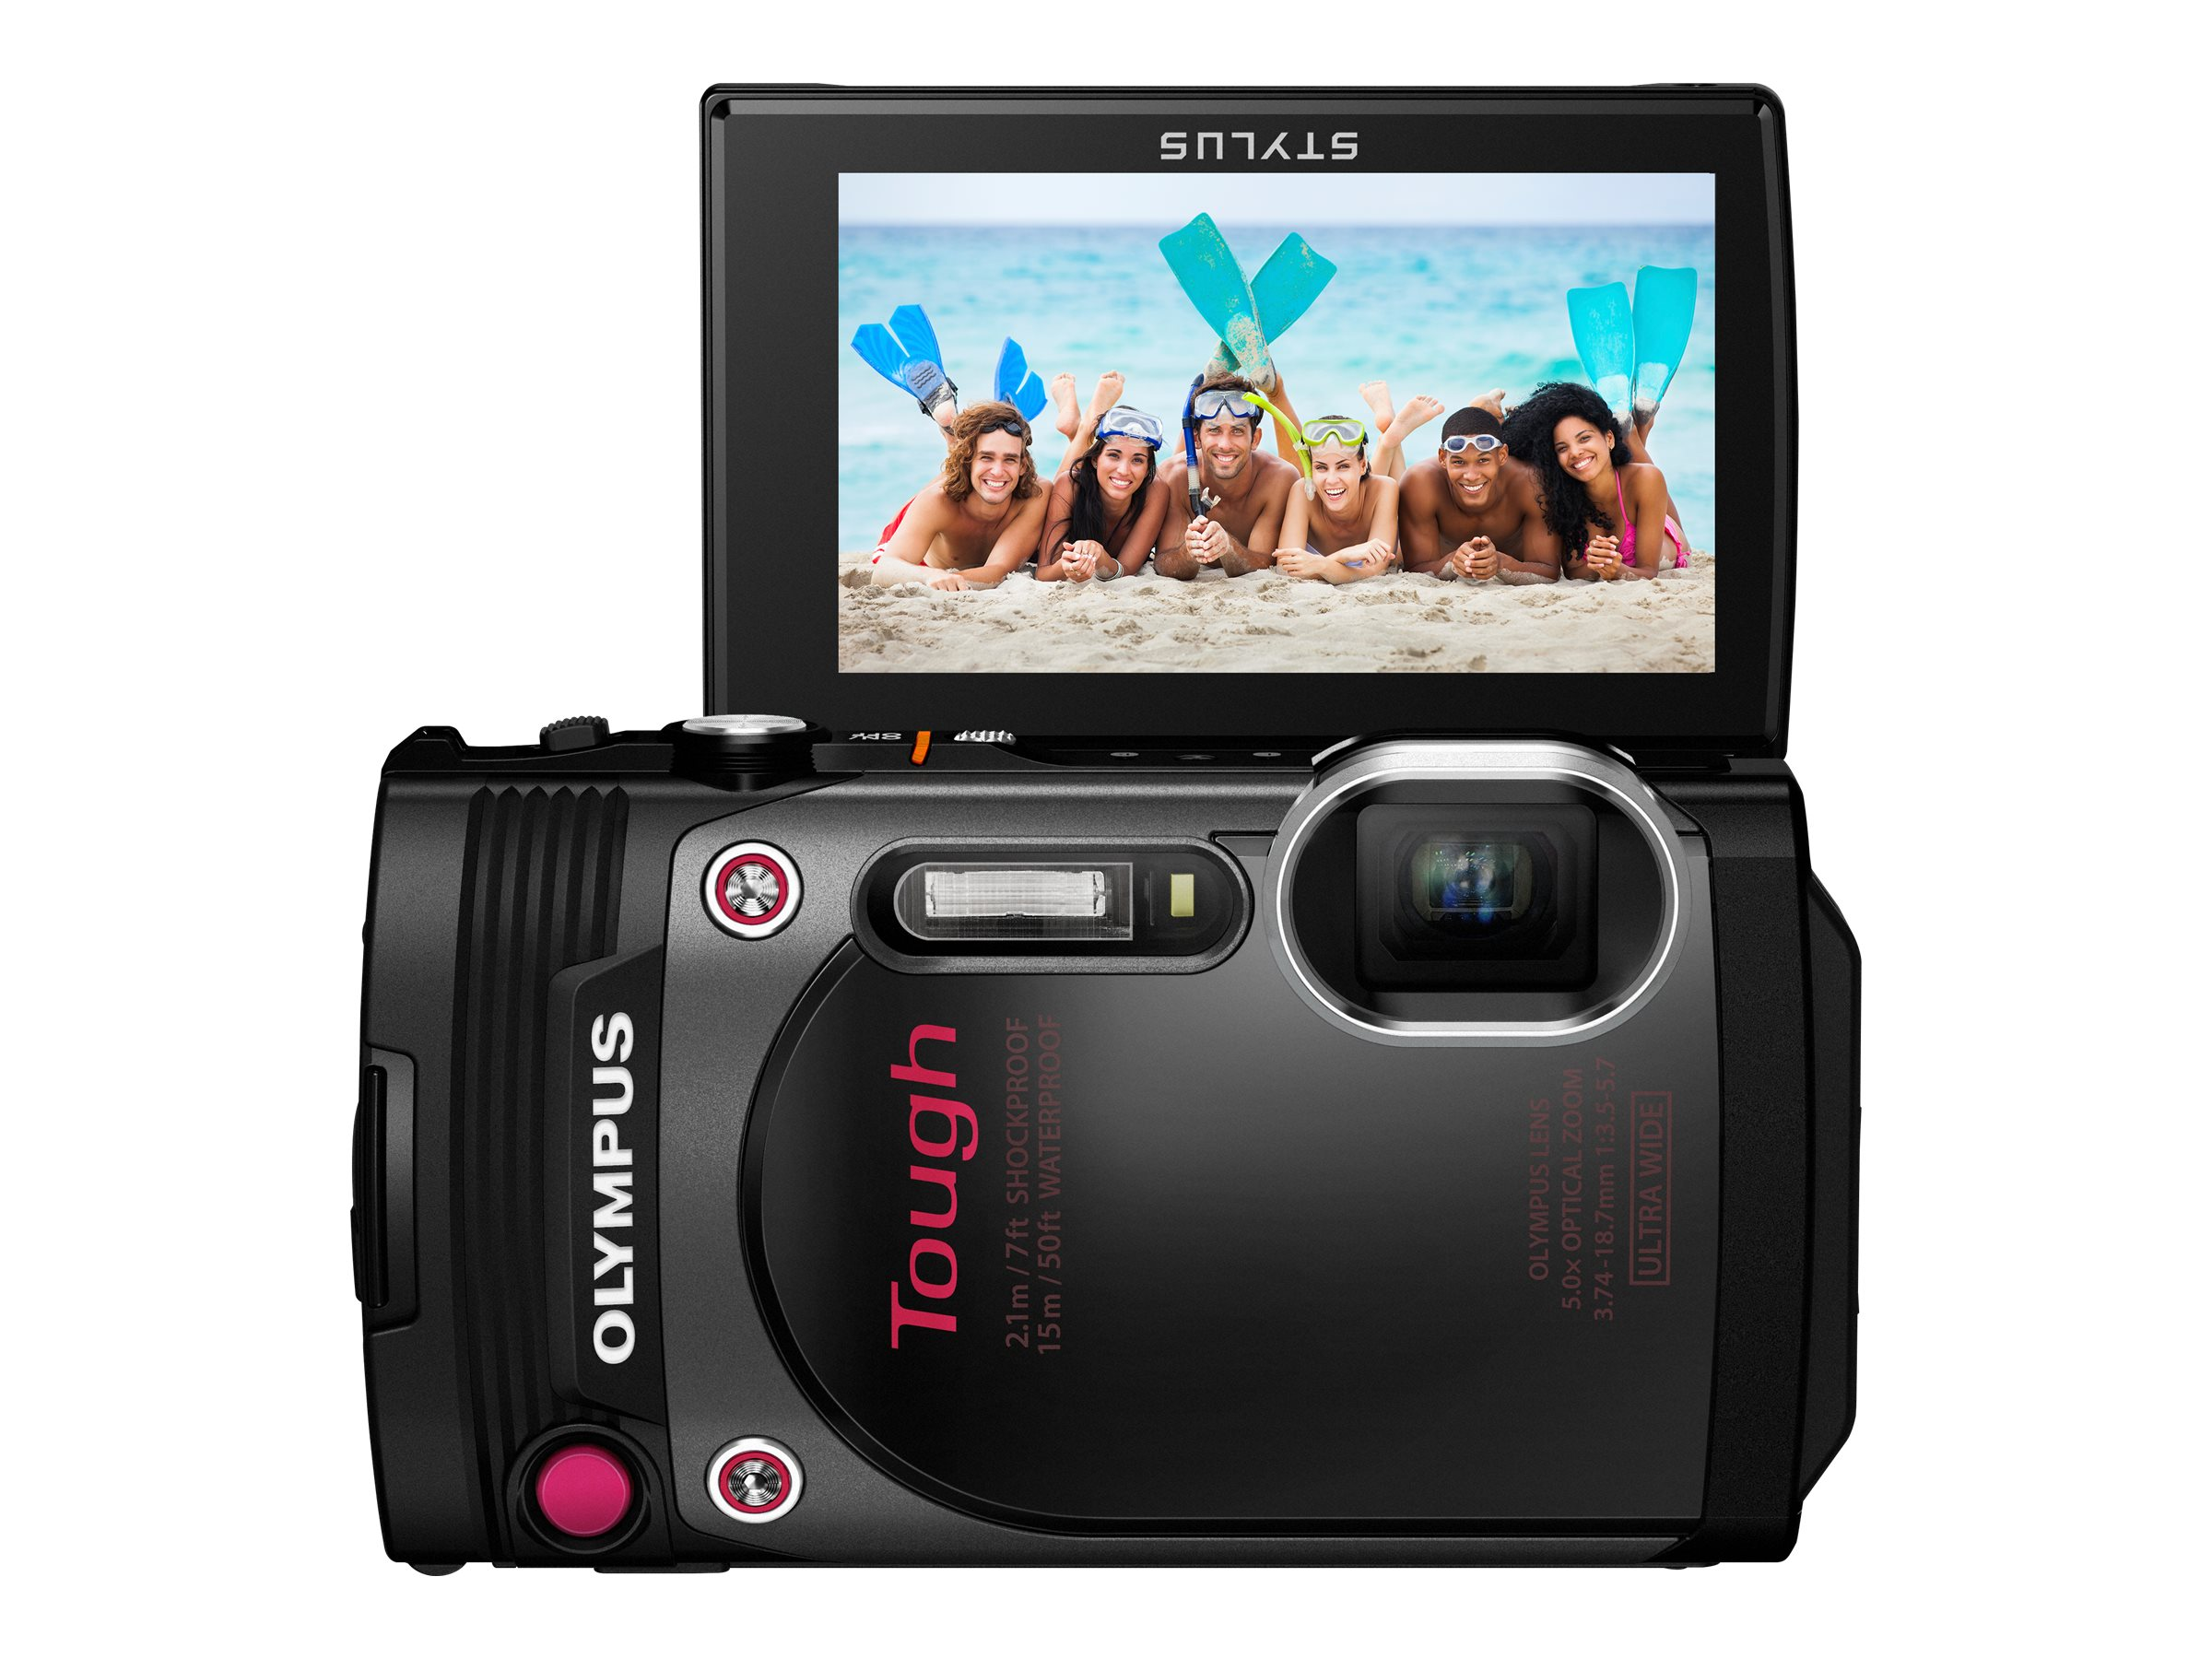 Olympus Stylus Tough TG-870 Digital Camera, Black, V104200BU000, 31188712, Cameras - Digital - Point & Shoot